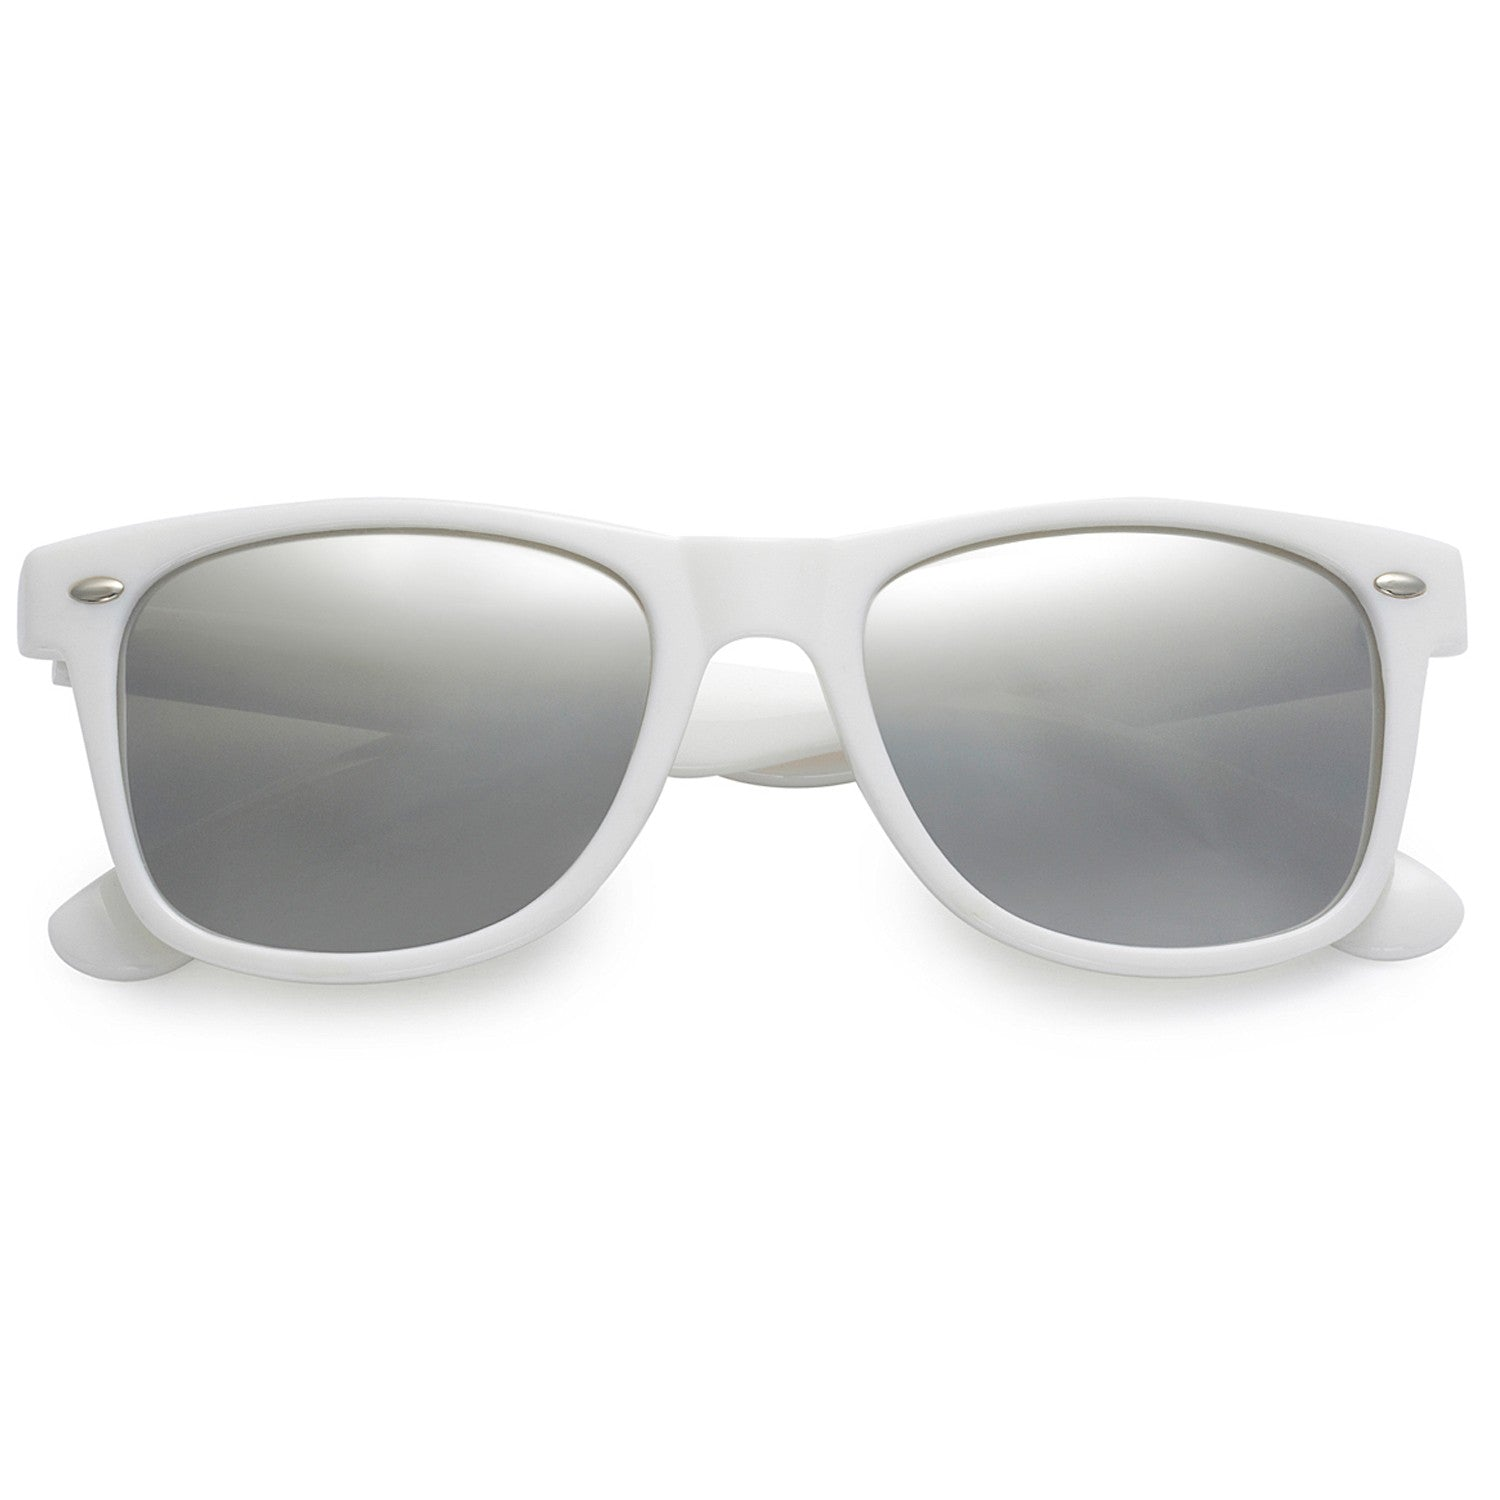 Polarspex Polarized 80's Retro Style Unisex Sunglasses with Gloss White Frames and Ice Tech Lenses